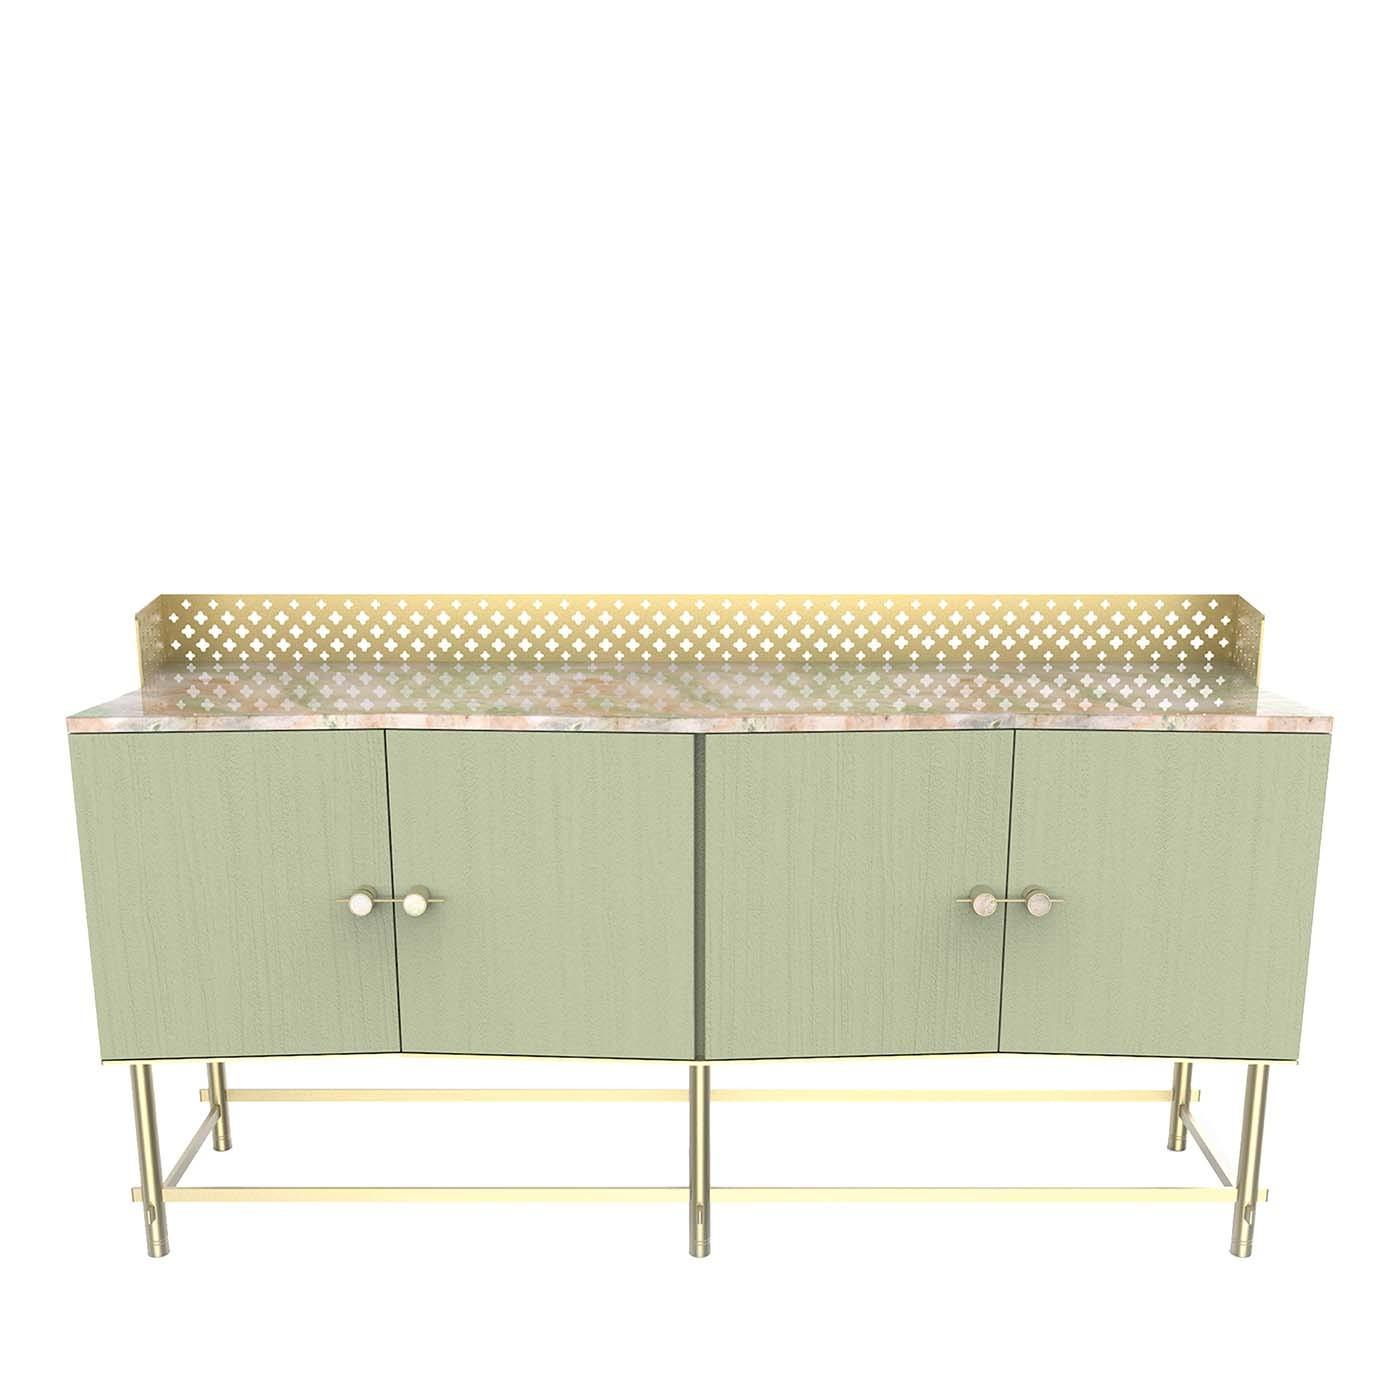 Antique And Vintage Sideboards – 5,984 For Sale At 1stdibs With Burnt Oak Metal Sideboards (View 18 of 30)